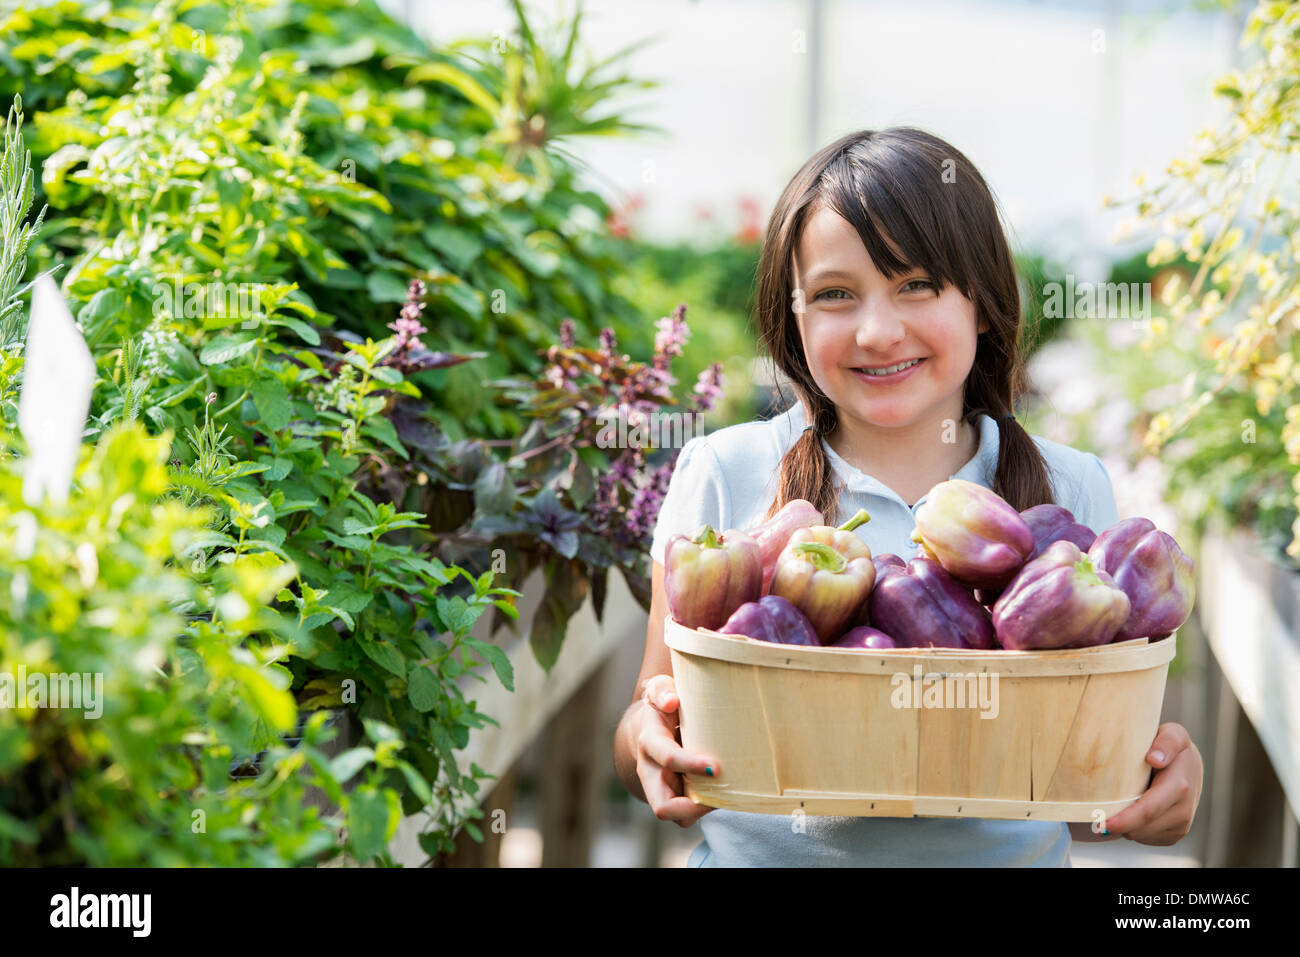 Summer on an organic farm. A girl holding a basket of fresh bell peppers. - Stock Image